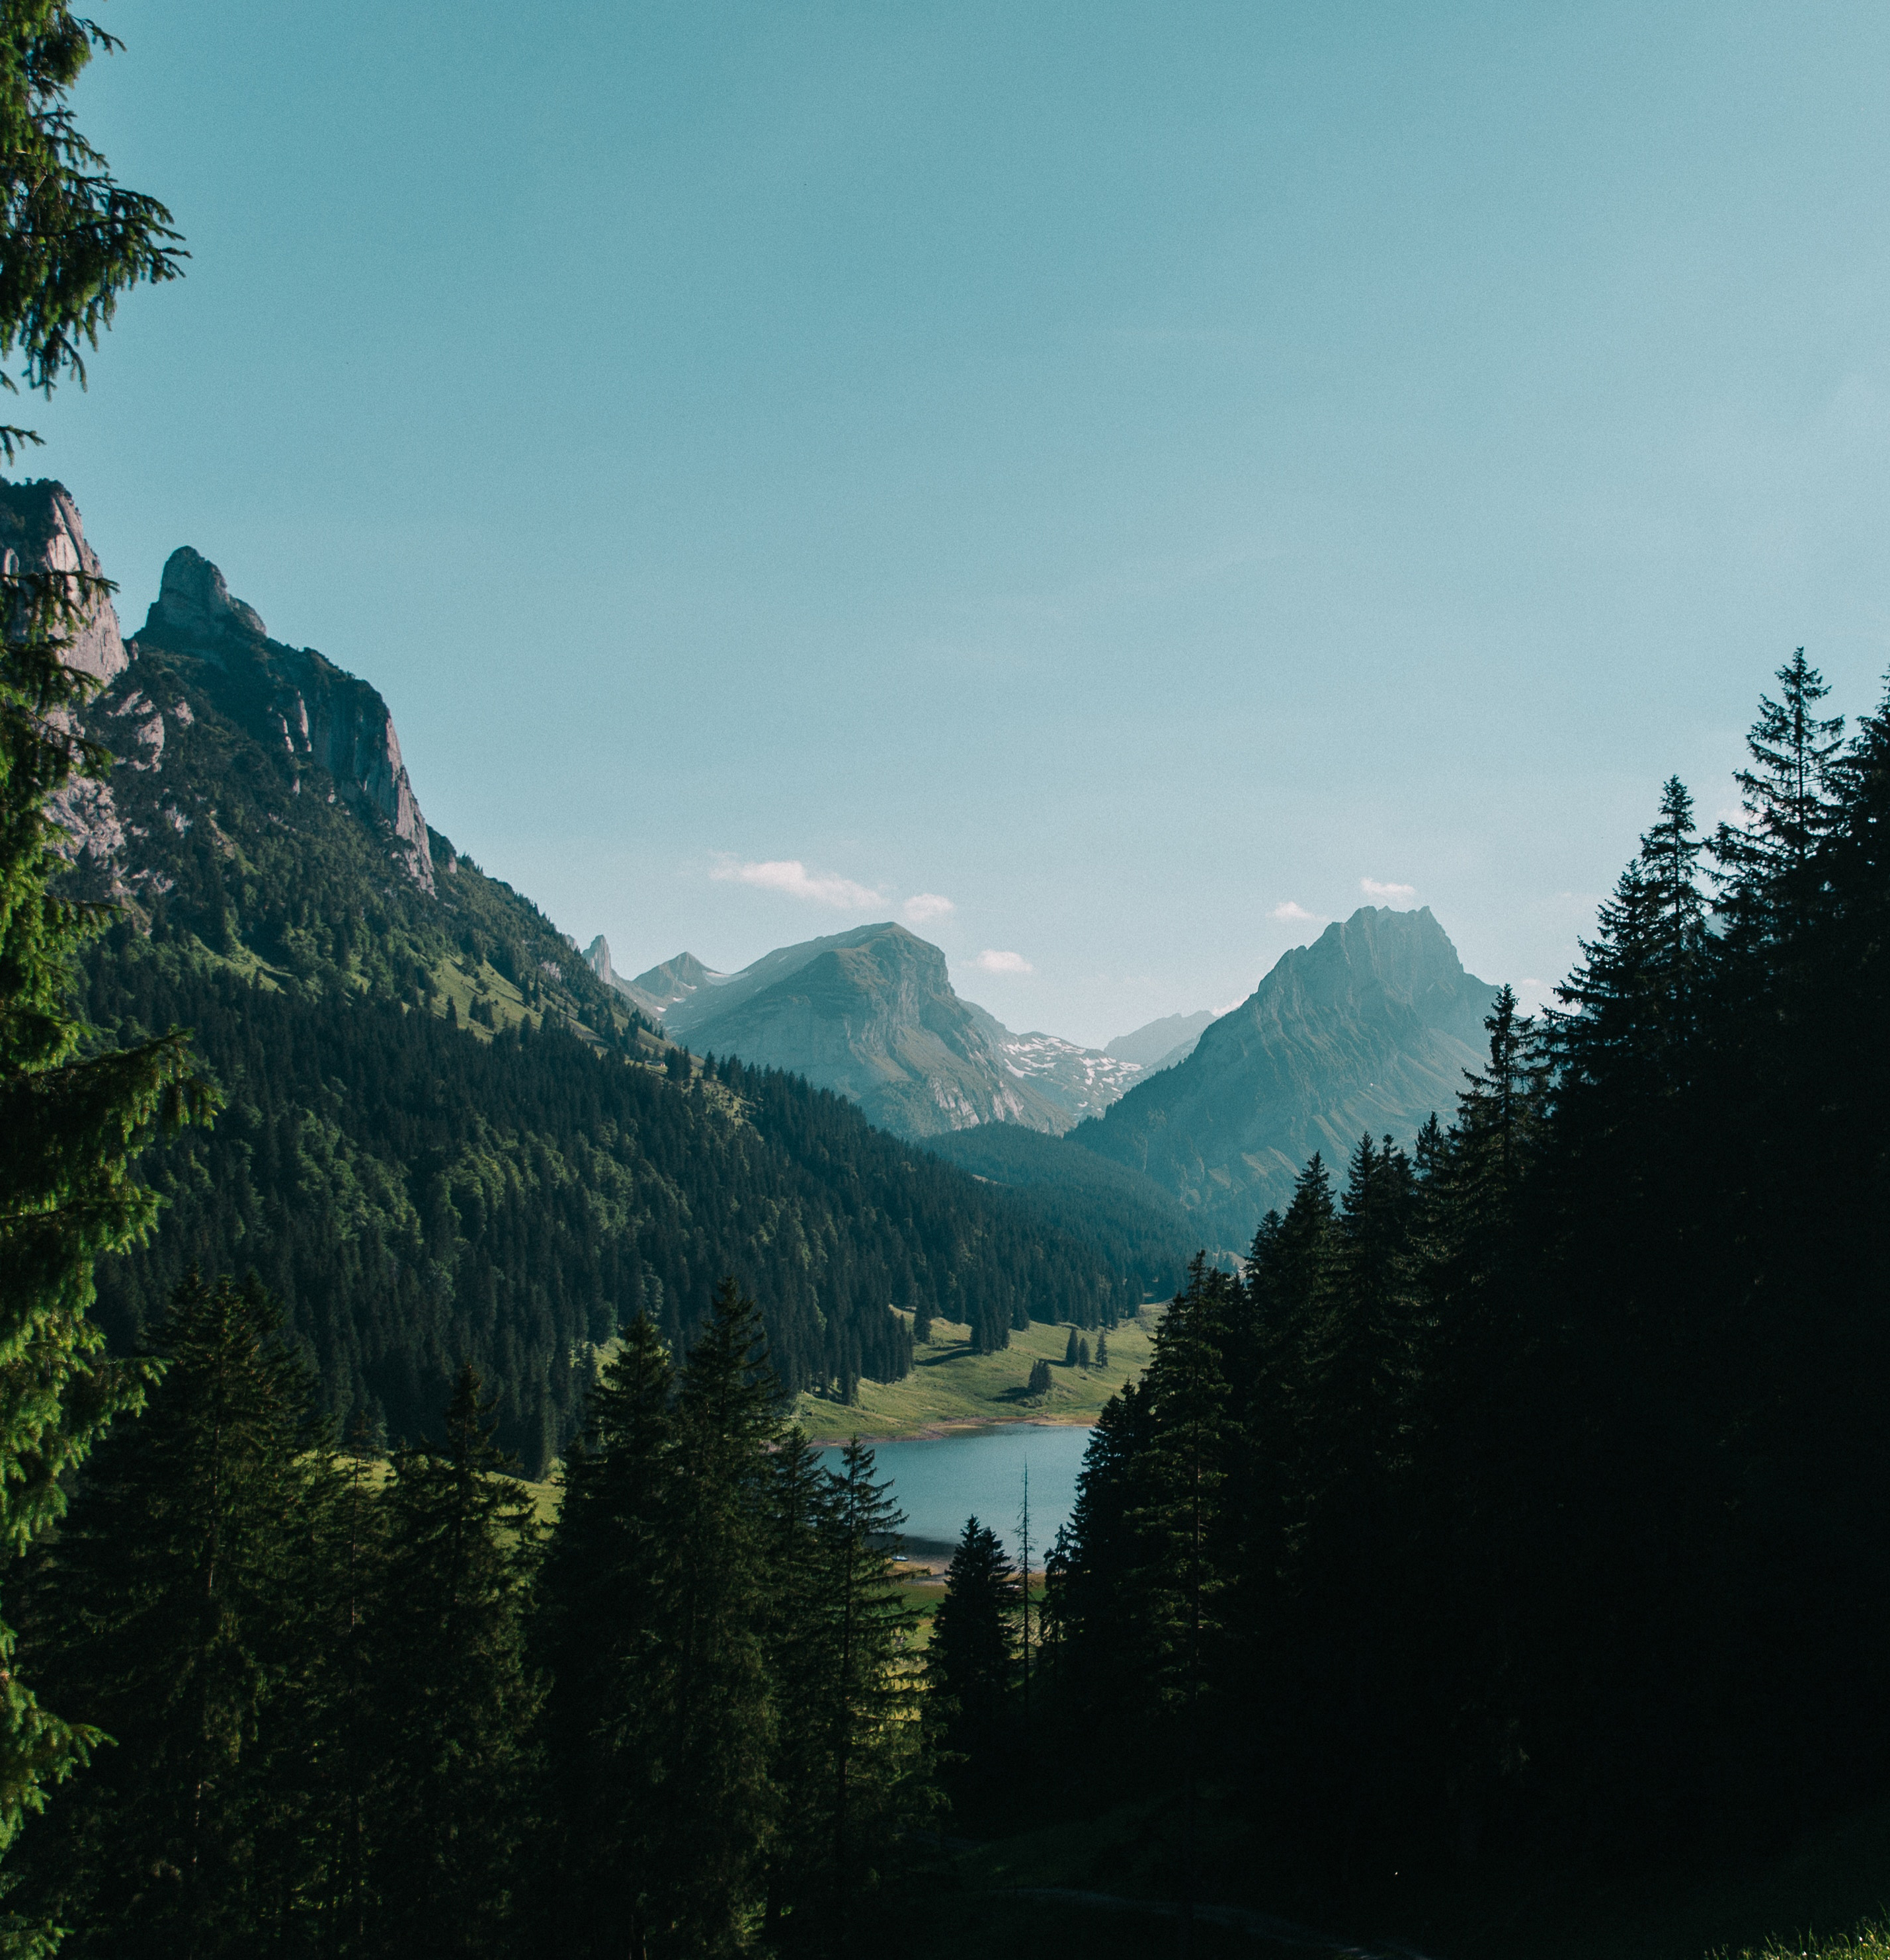 mountains coniferous trees and a lake